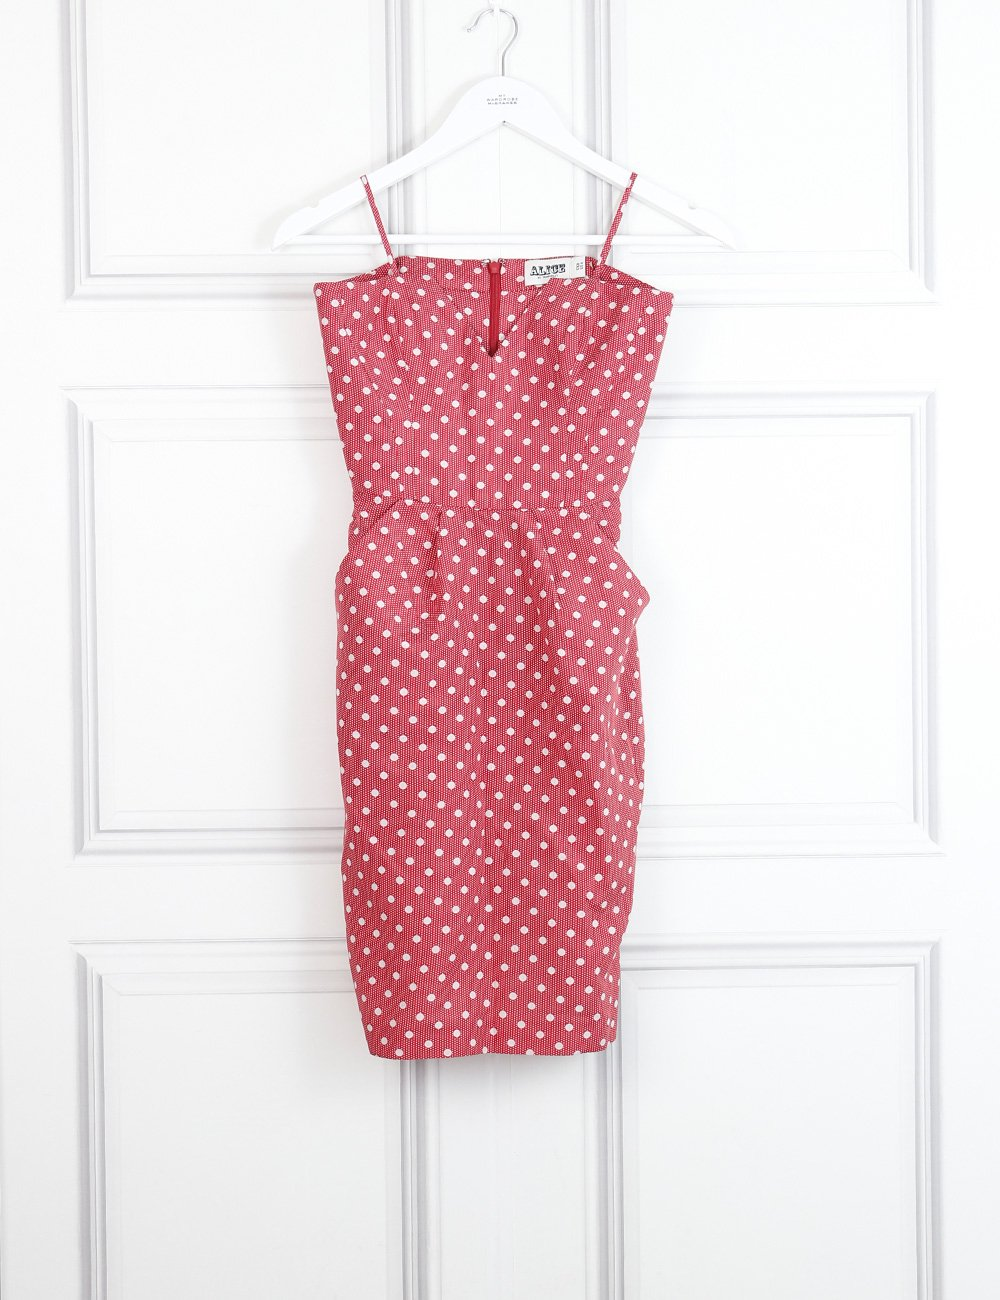 Alice by Temperley multicolour strapless dress with polka dots 8Uk- My Wardrobe Mistakes